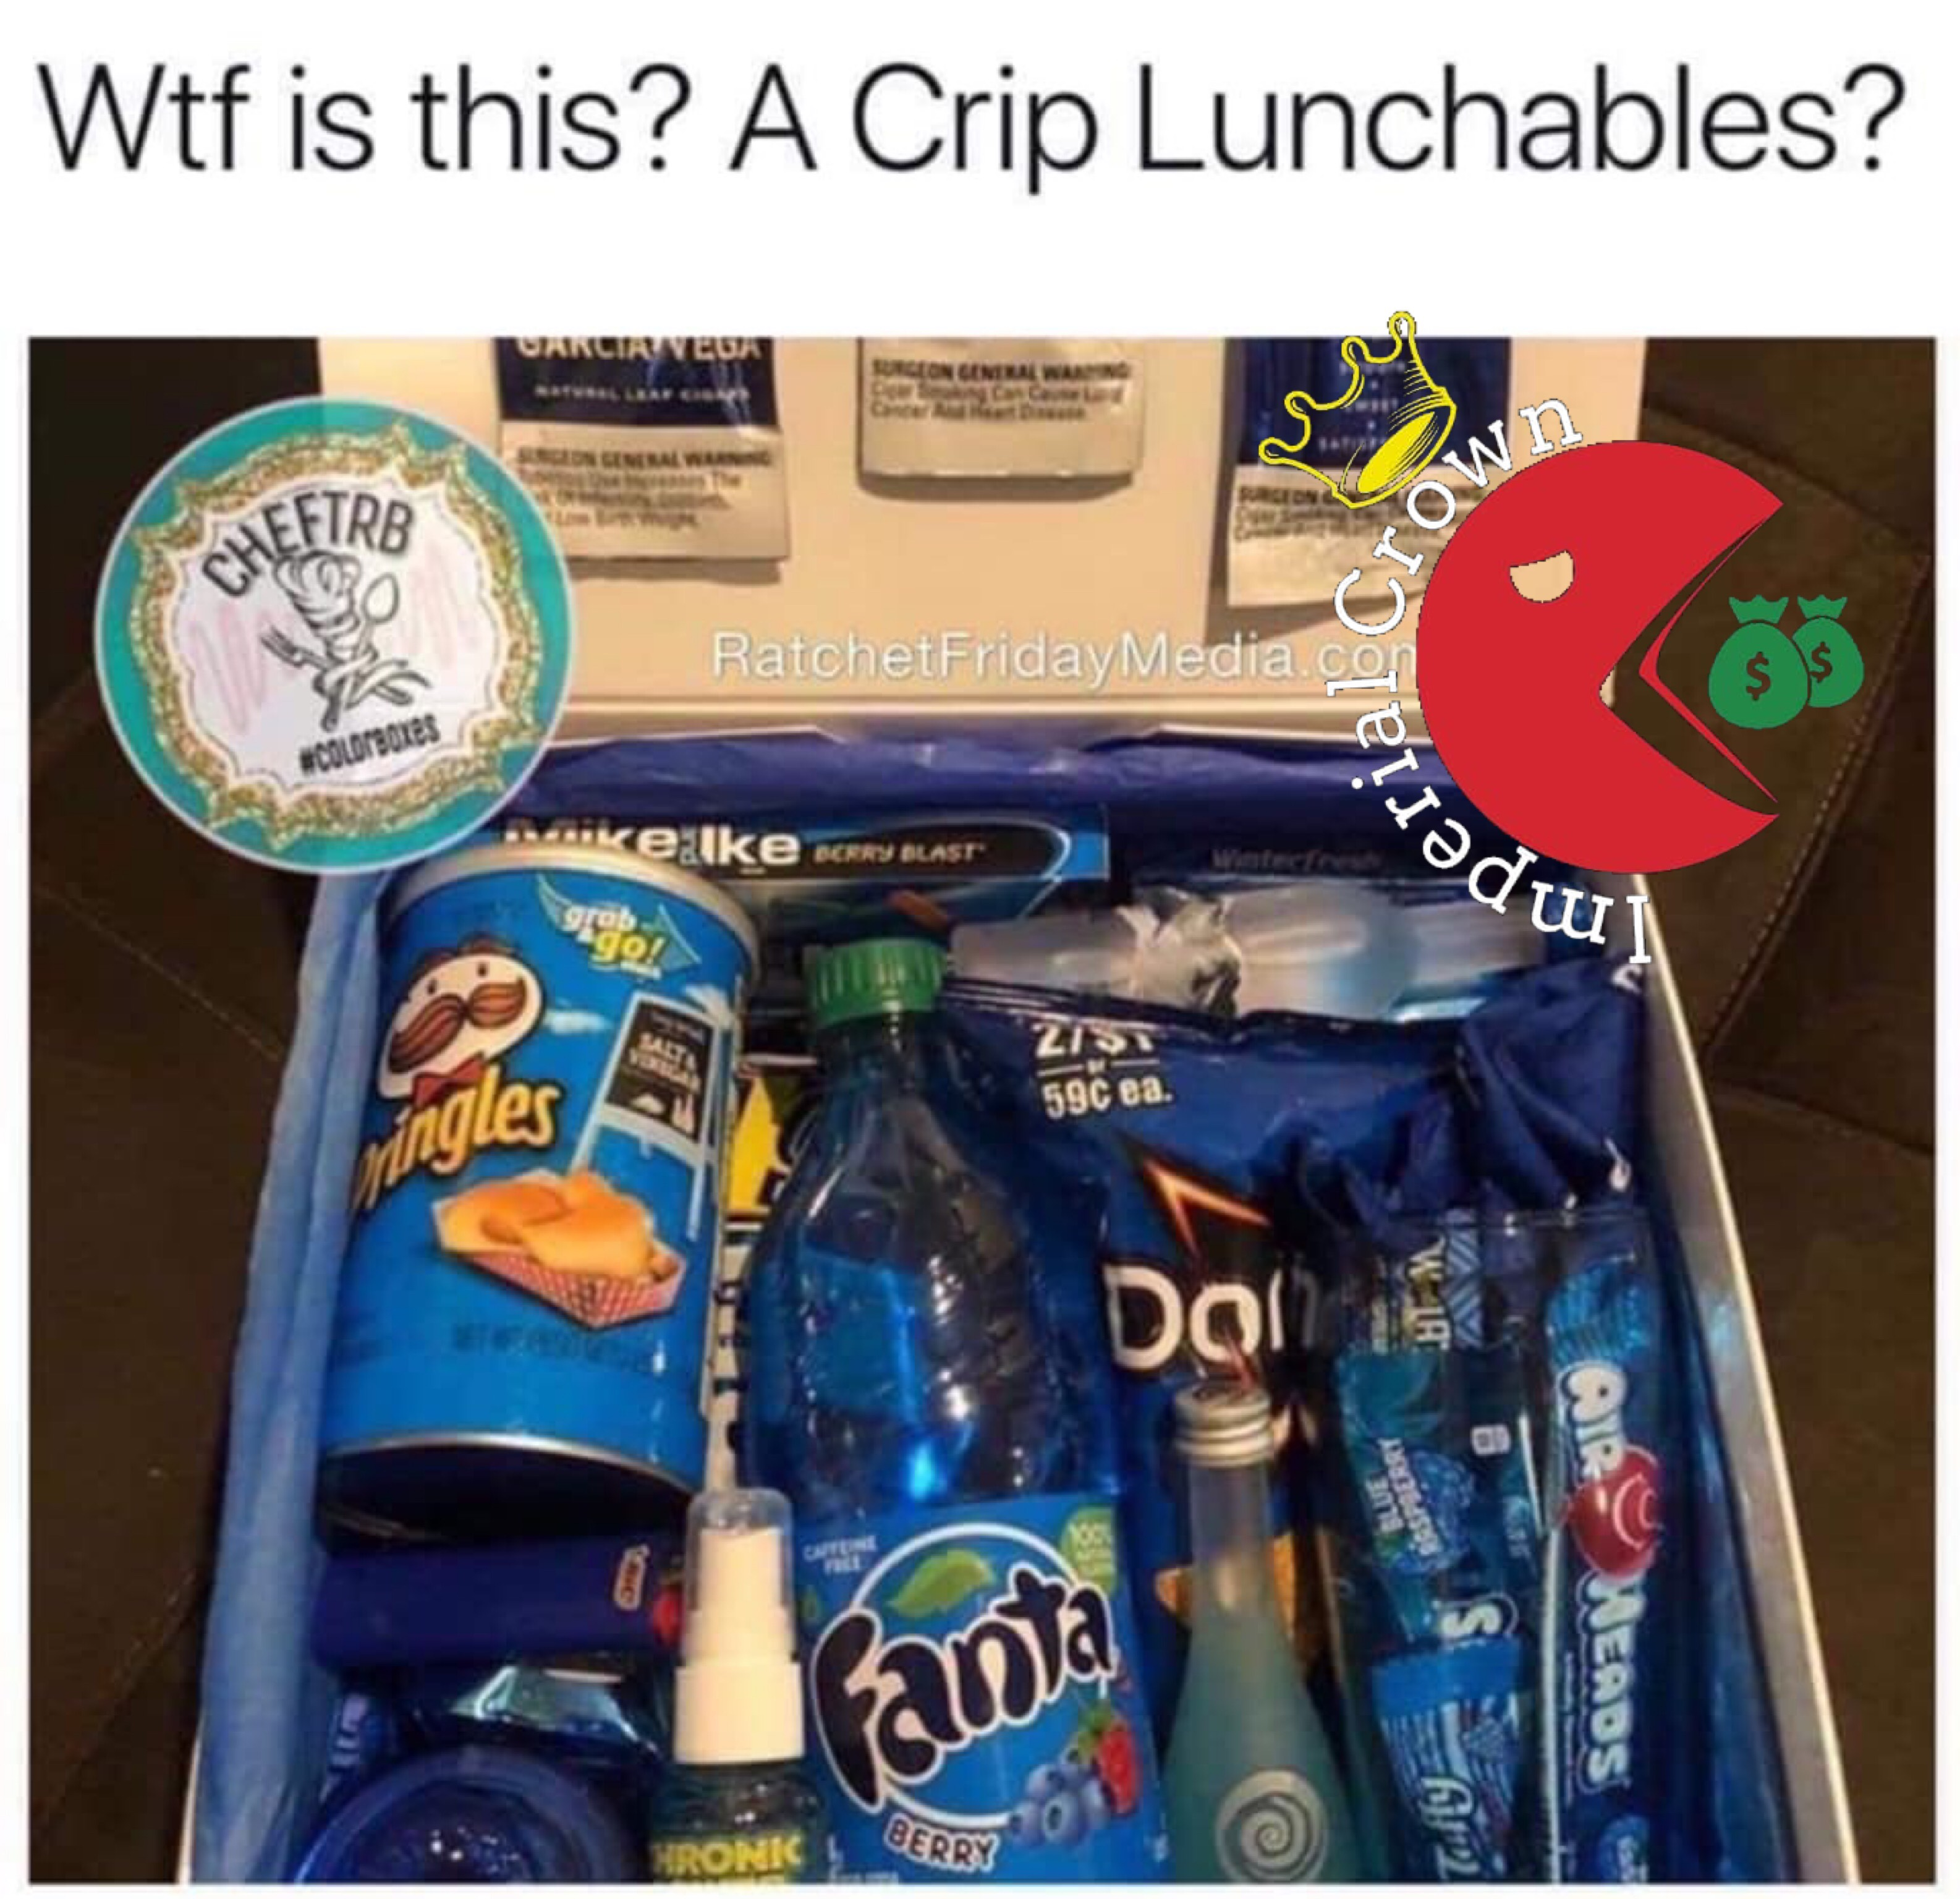 Wtf is this a crip lunchables